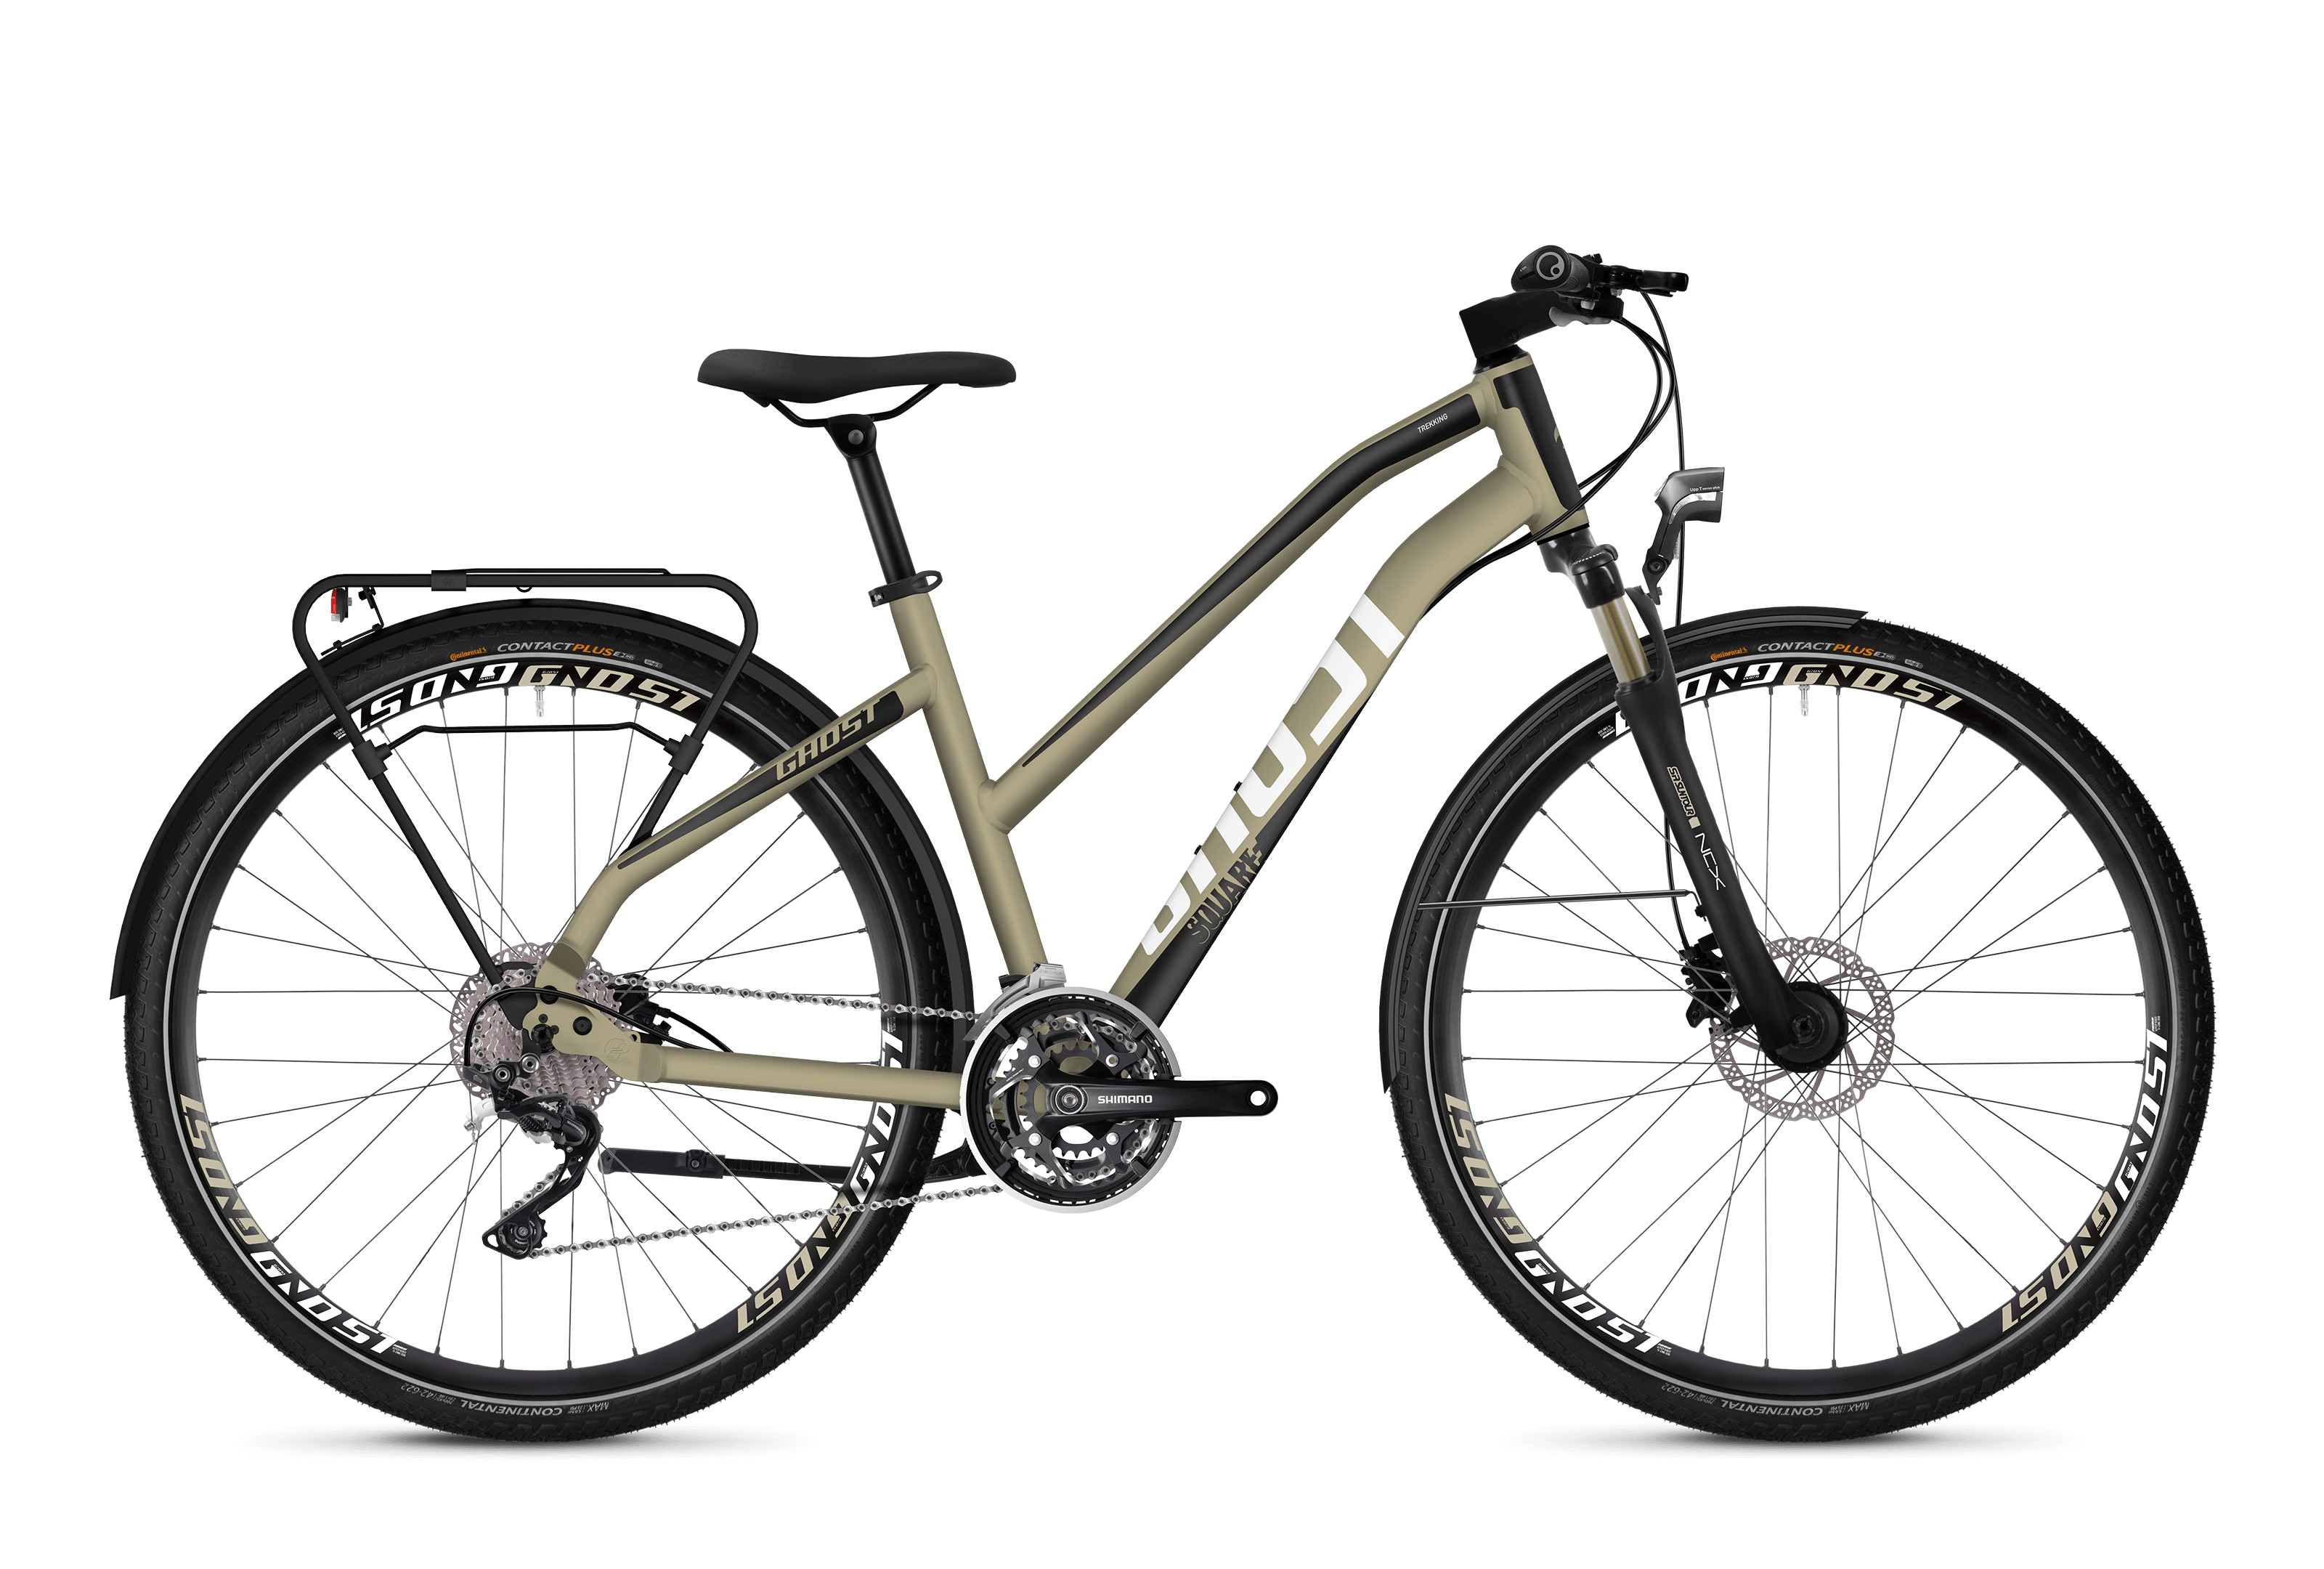 Bicykel GHOST Square Trekking 6.8 Lady ext gold / jet black / star white 2019